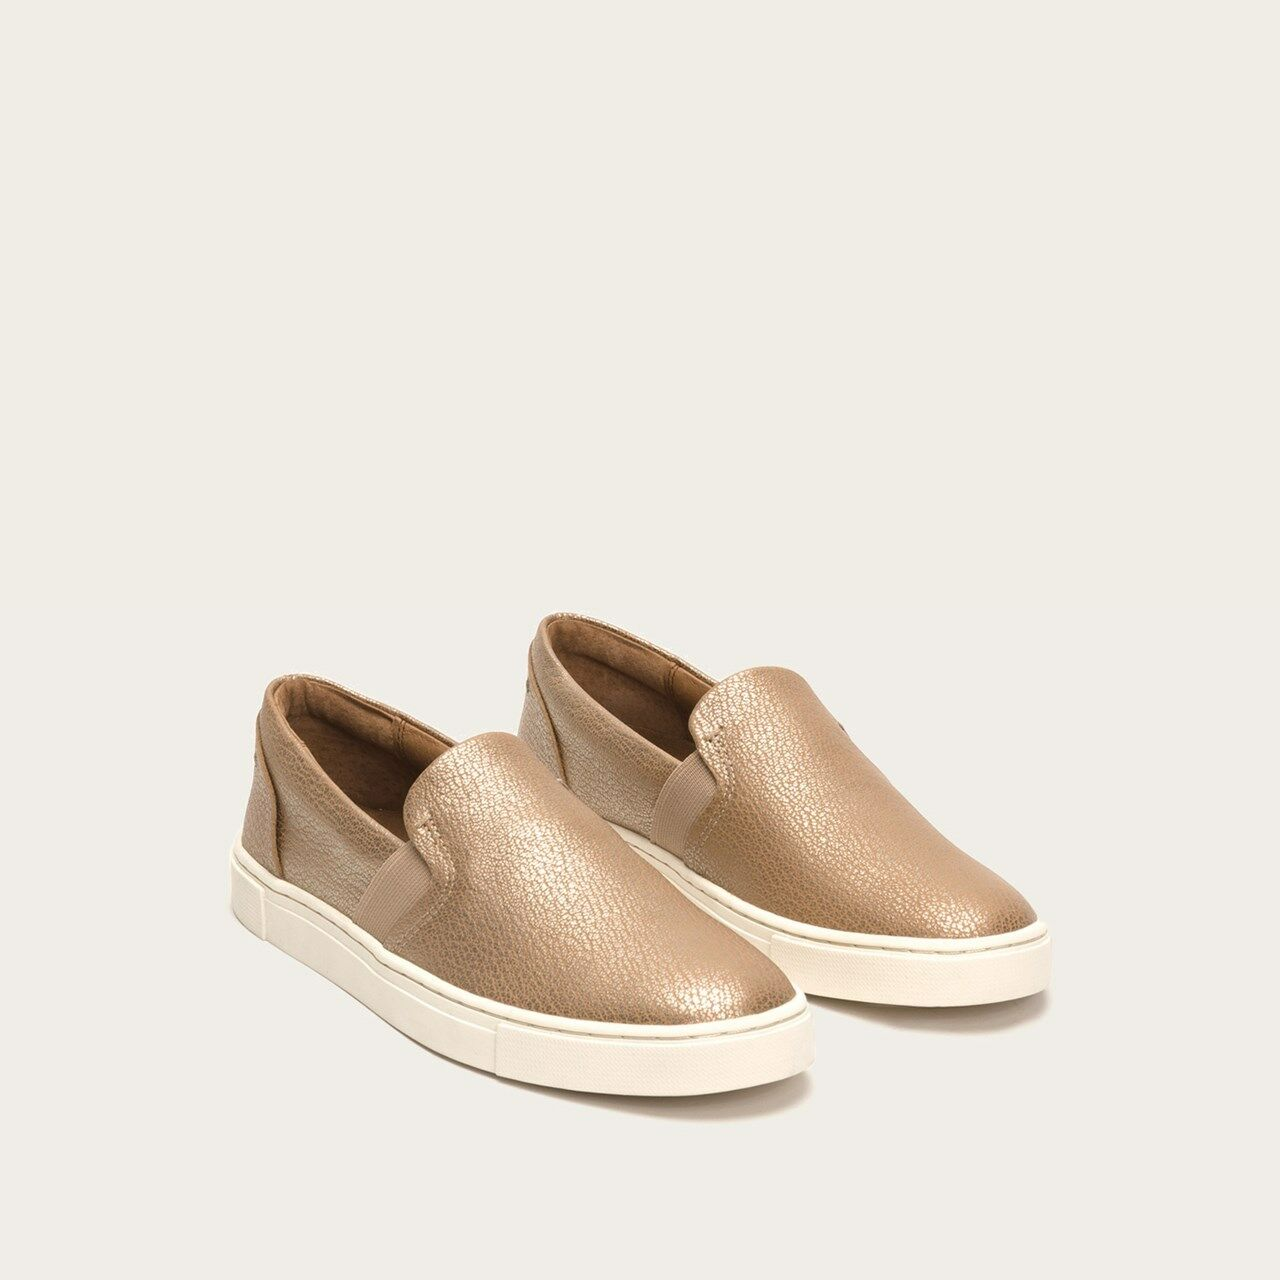 FRYE Ivy Slip gold Leather Sneakers shoes